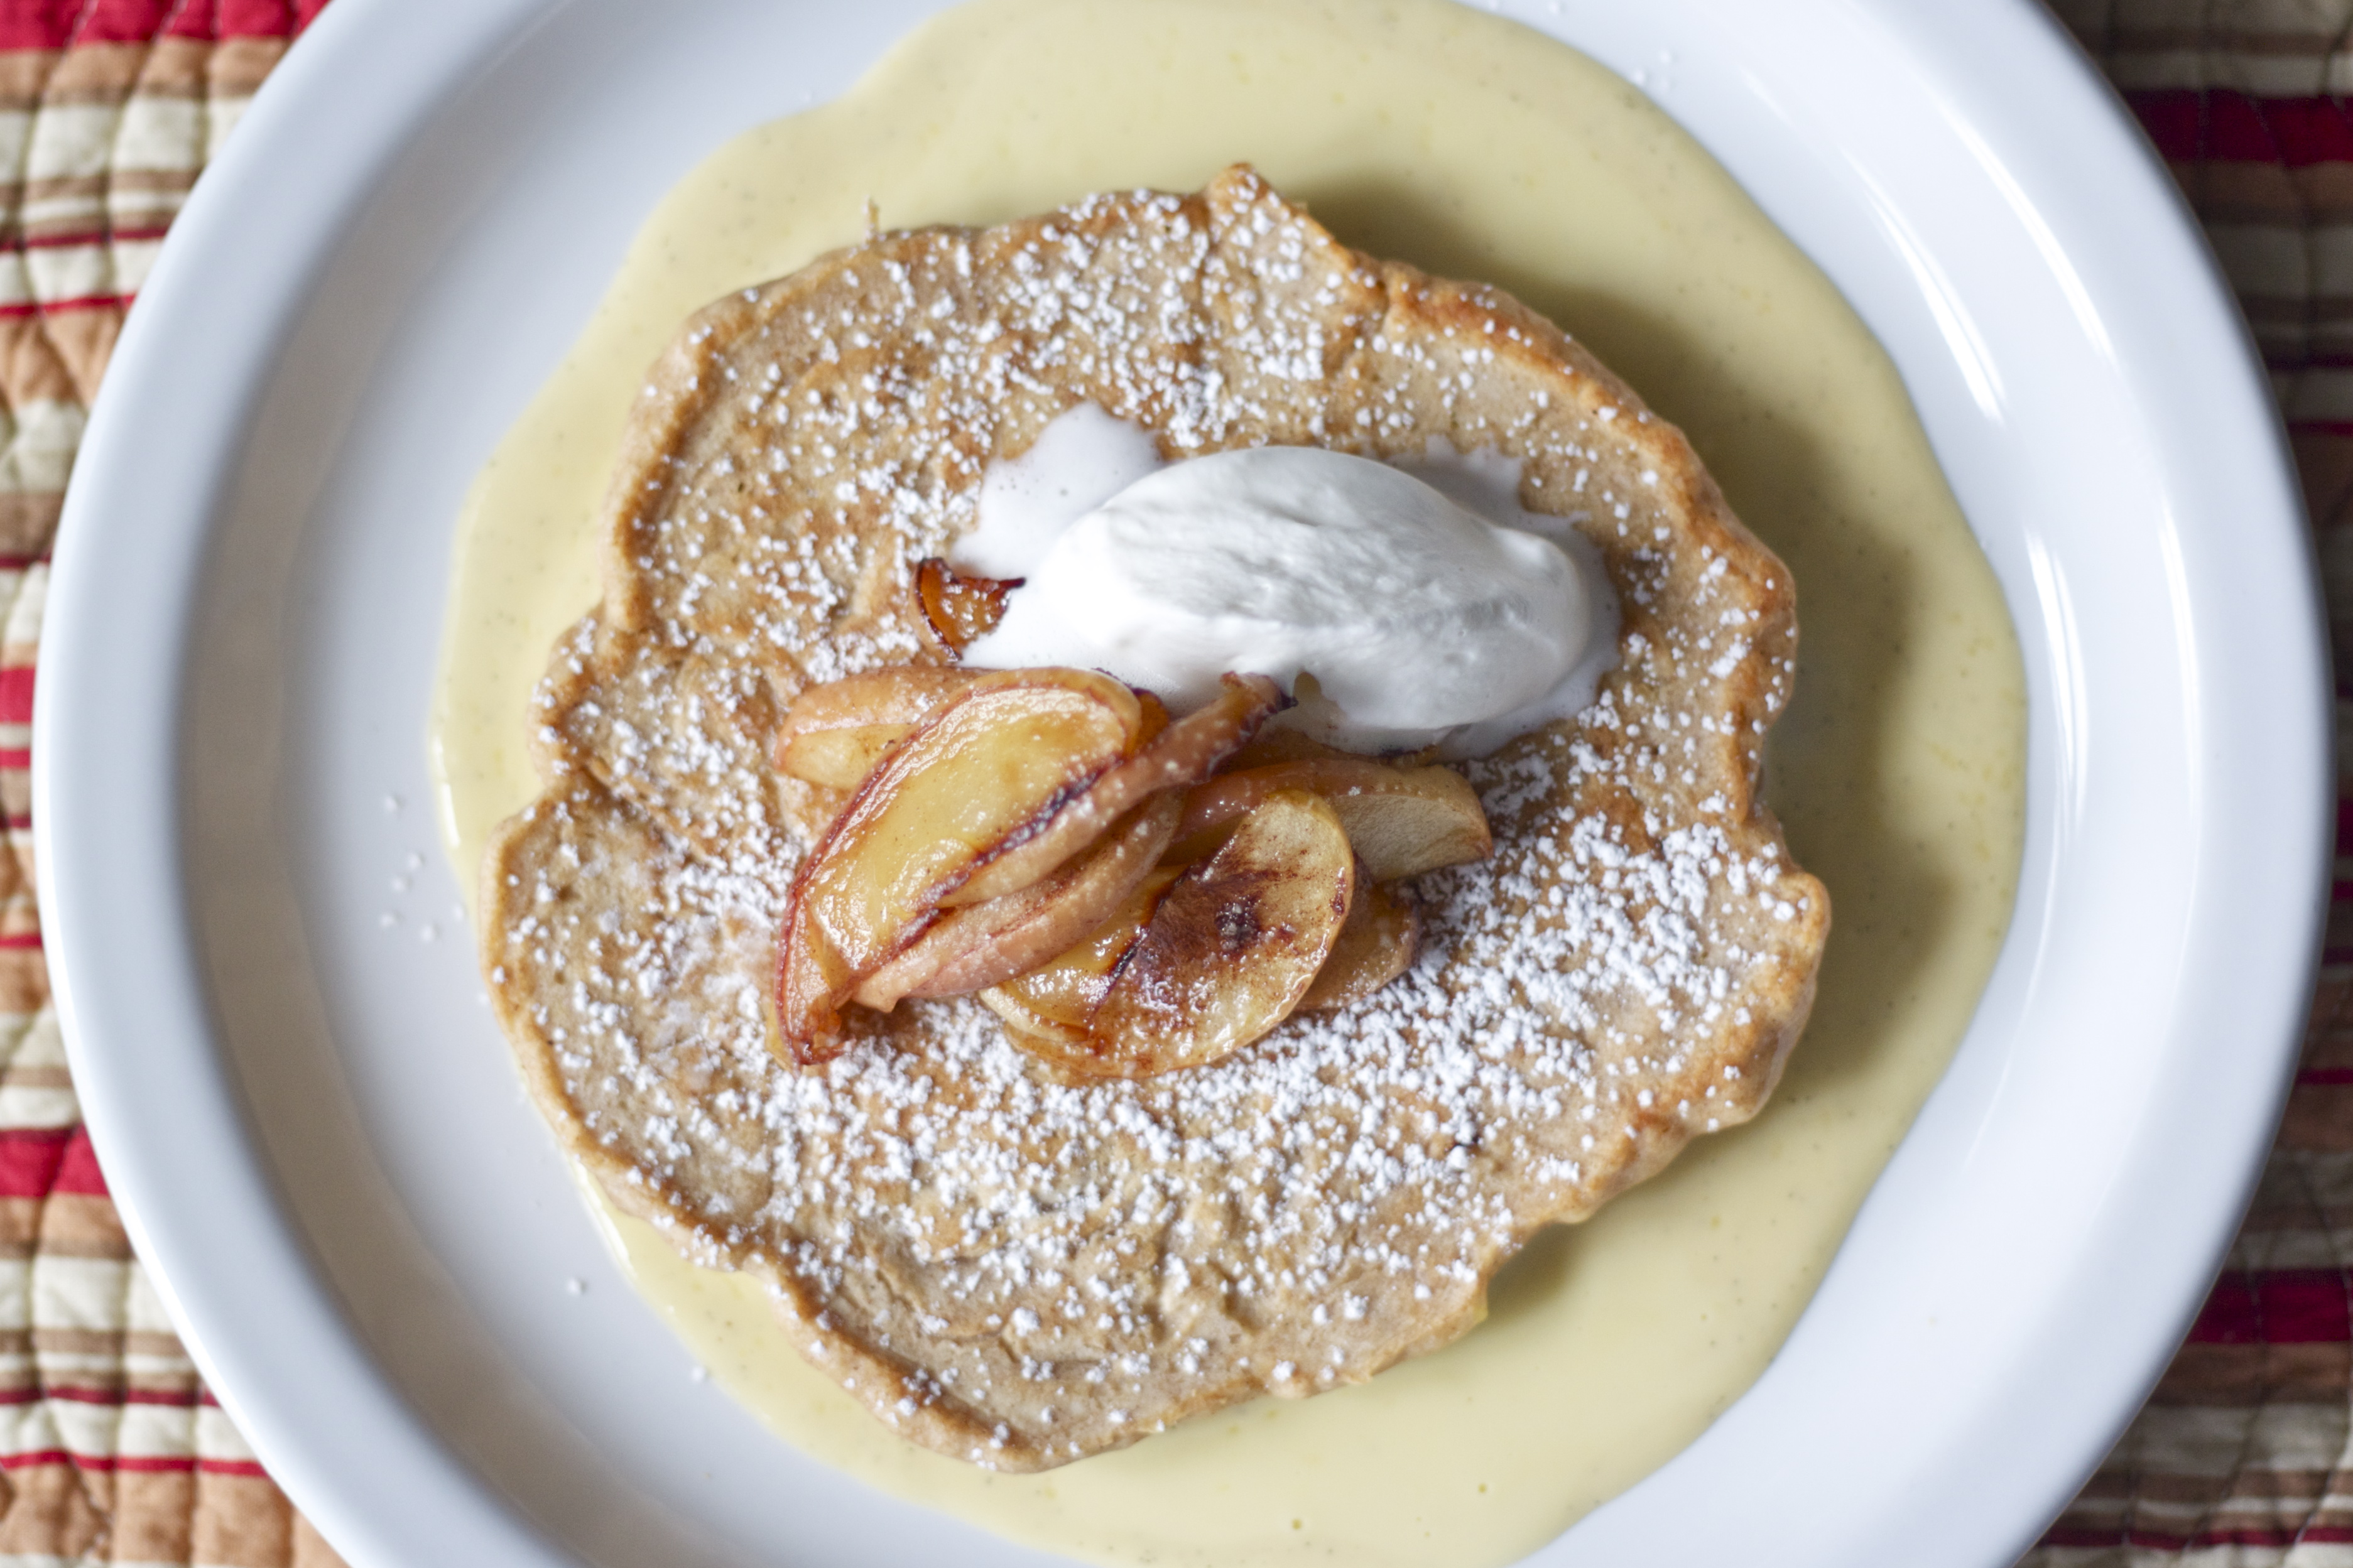 Caramelized apple pancakes on creme anglaise with whipped cream.